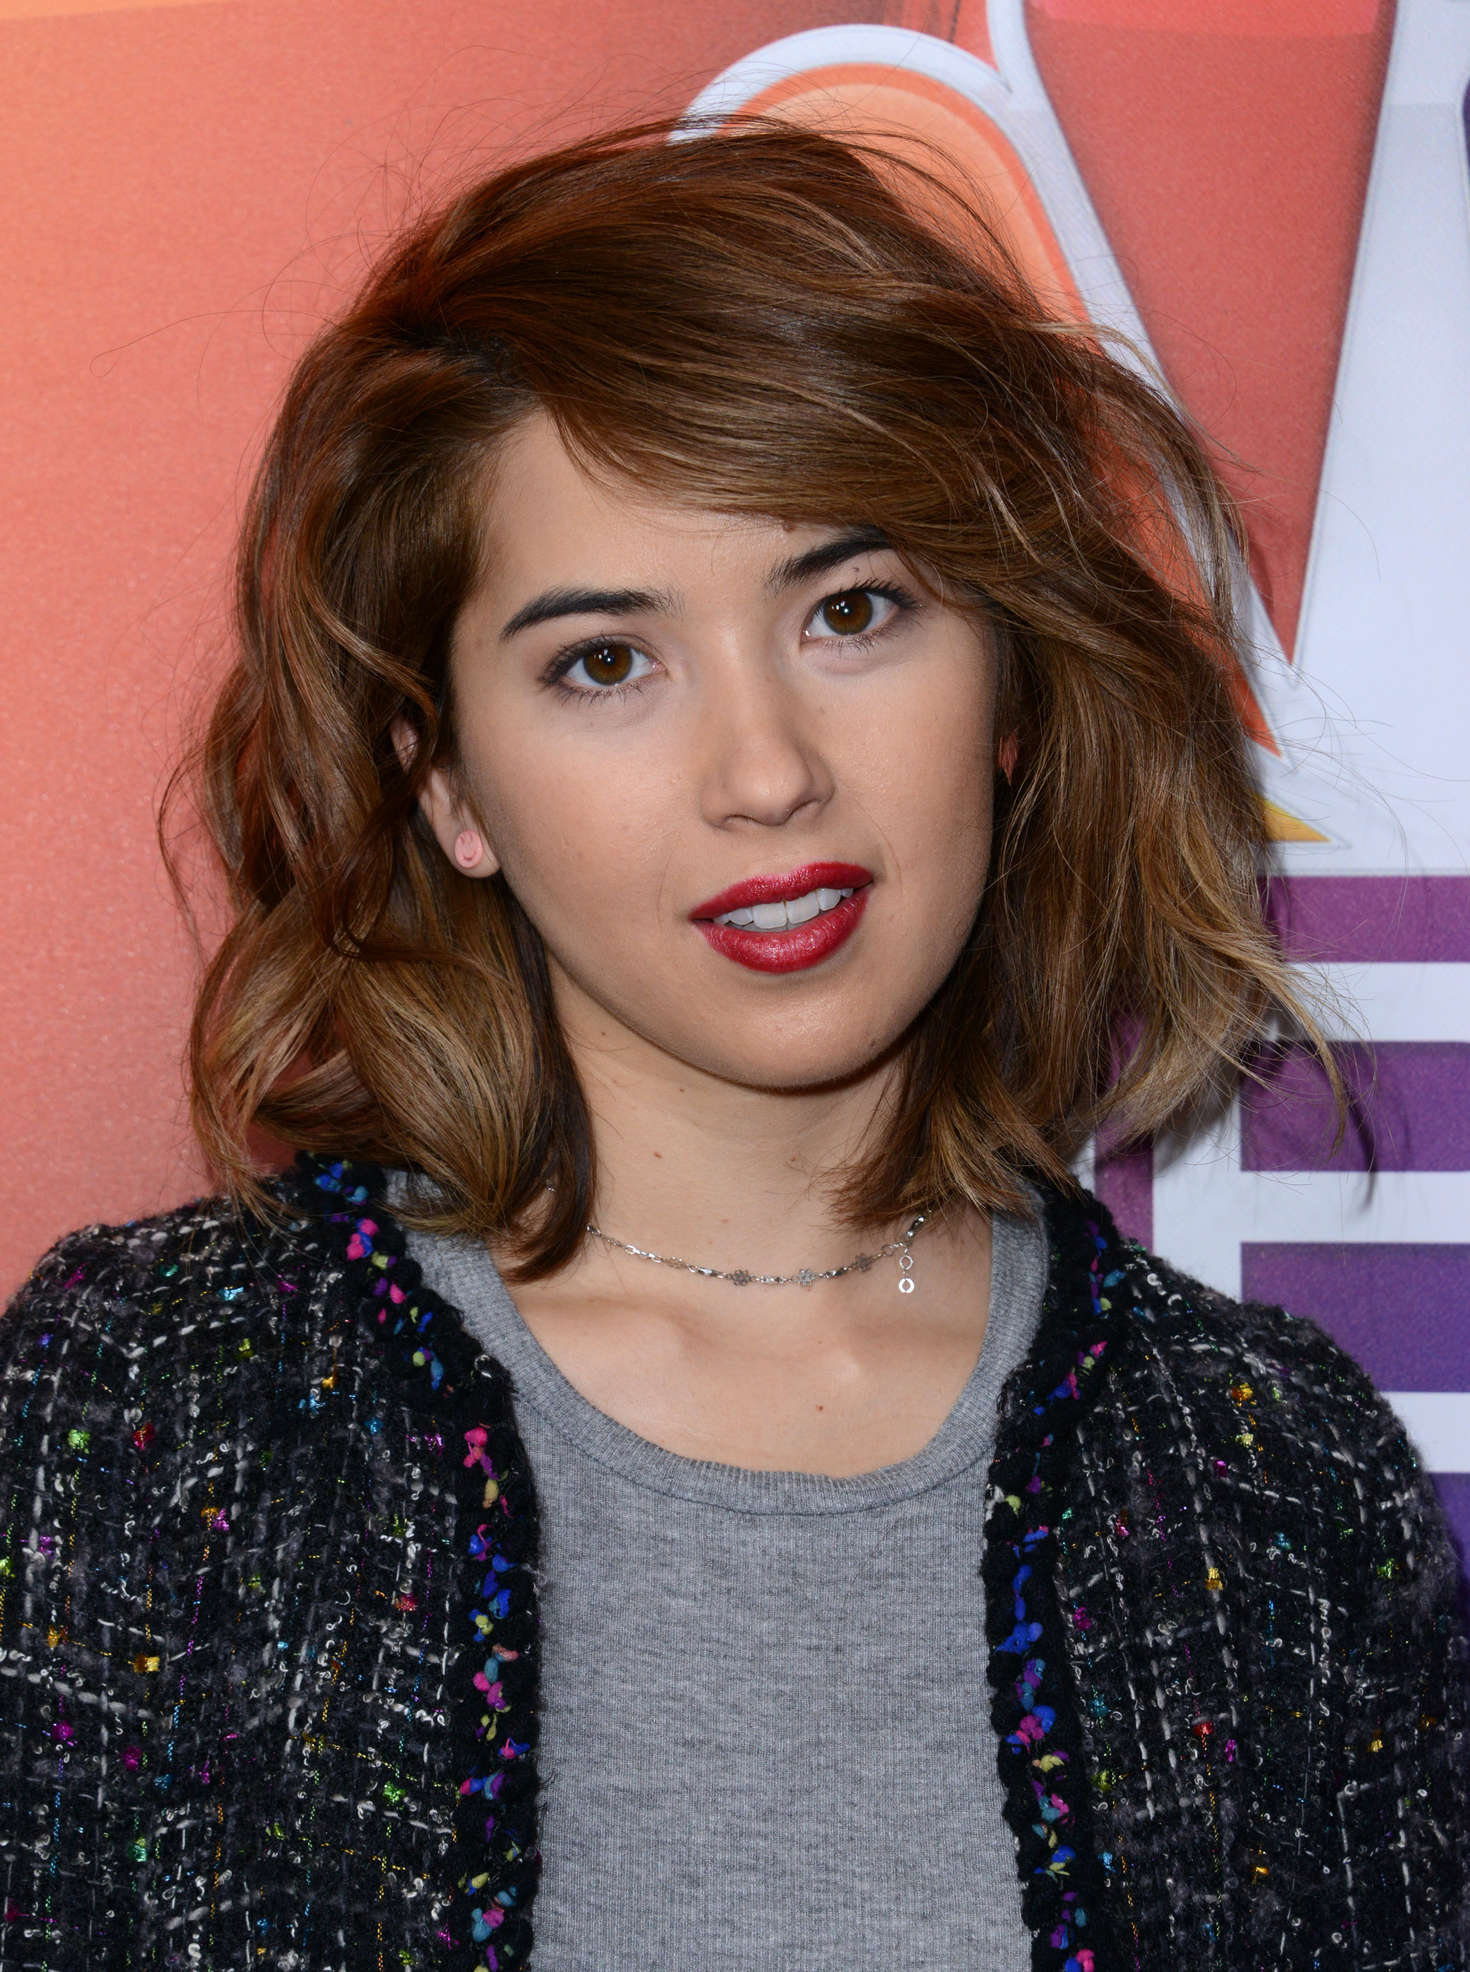 Nichole Bloom NBCUniversal Winter TCA Tour in Pasadena